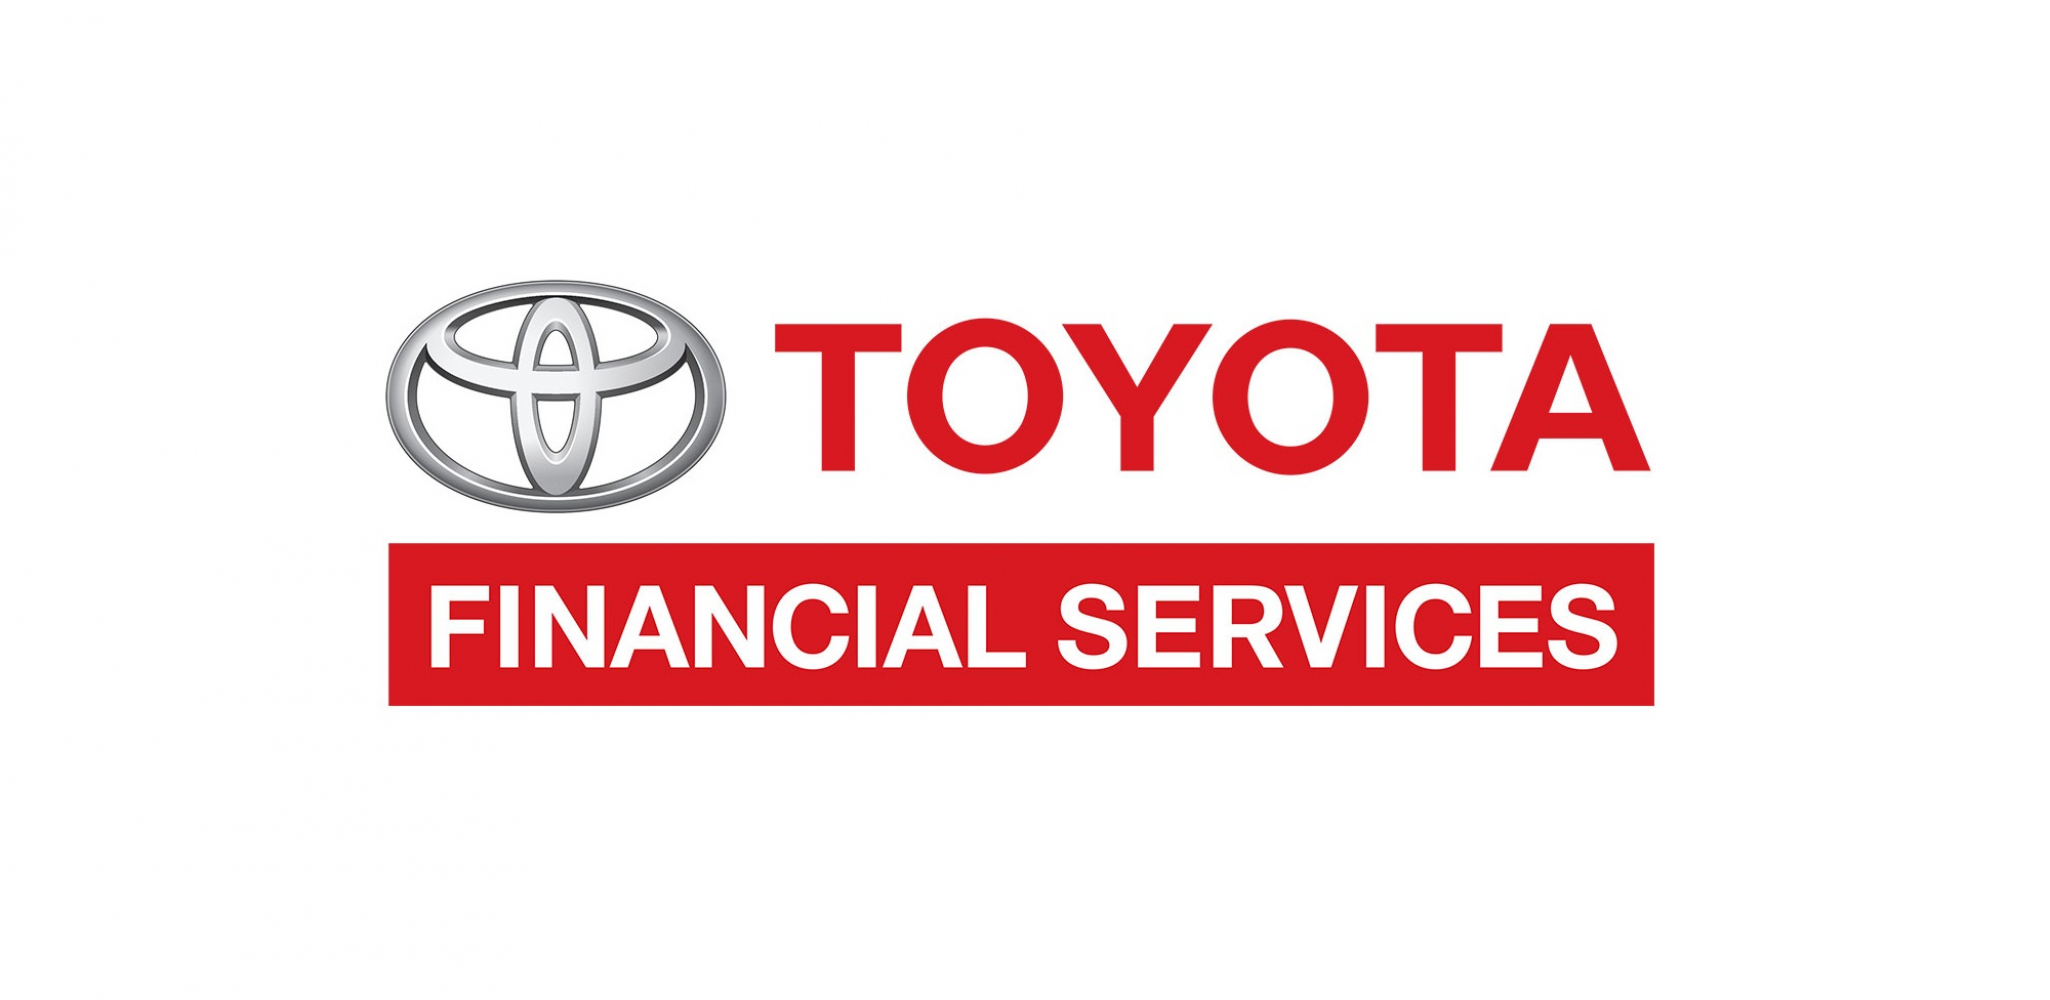 Toyota Financial Services Offers Payment Relief to Customers Affected by Texas Storms